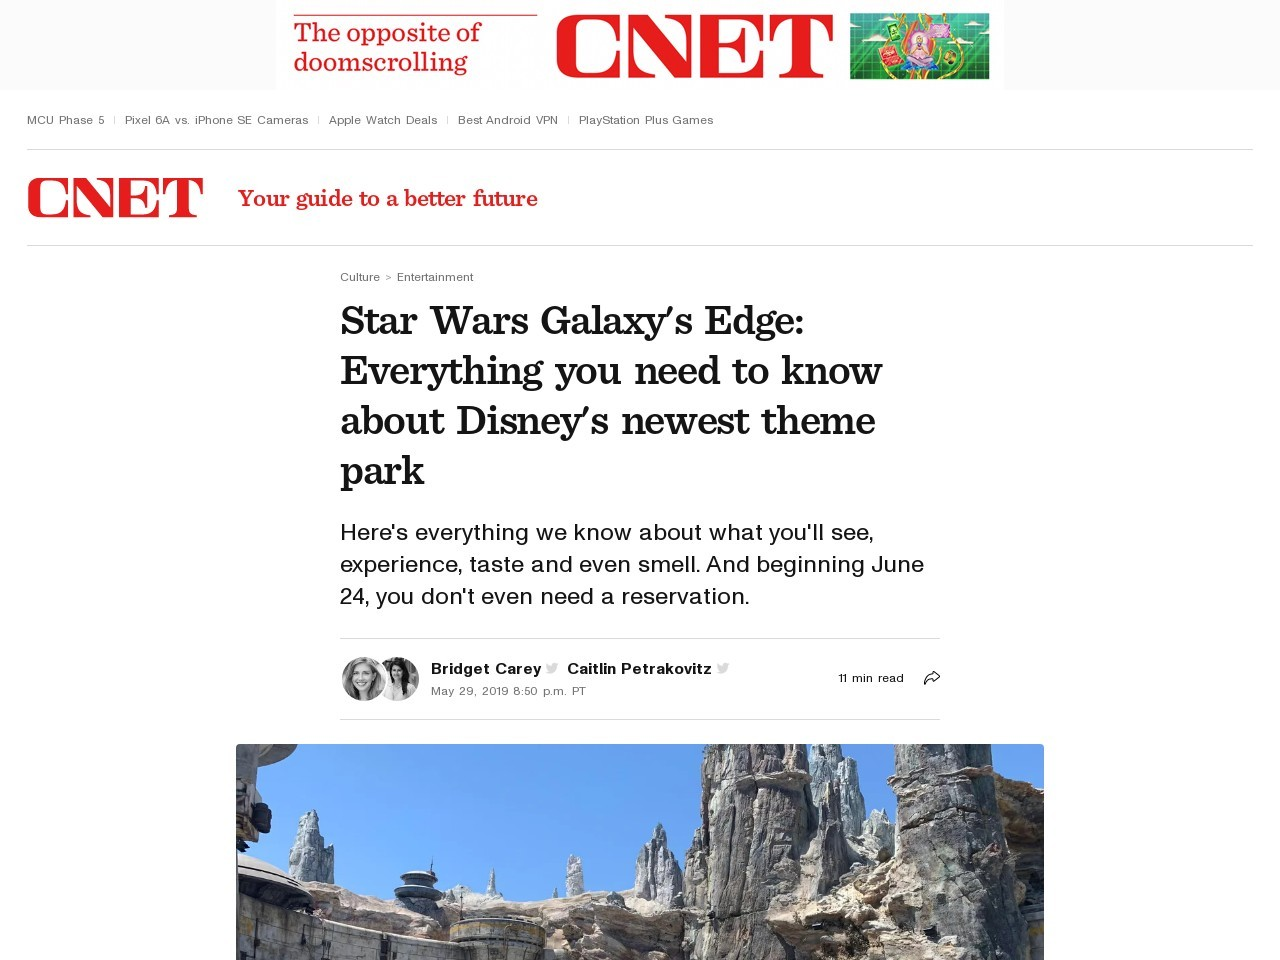 Star Wars land opening dates revealed: Everything we know     – CNET